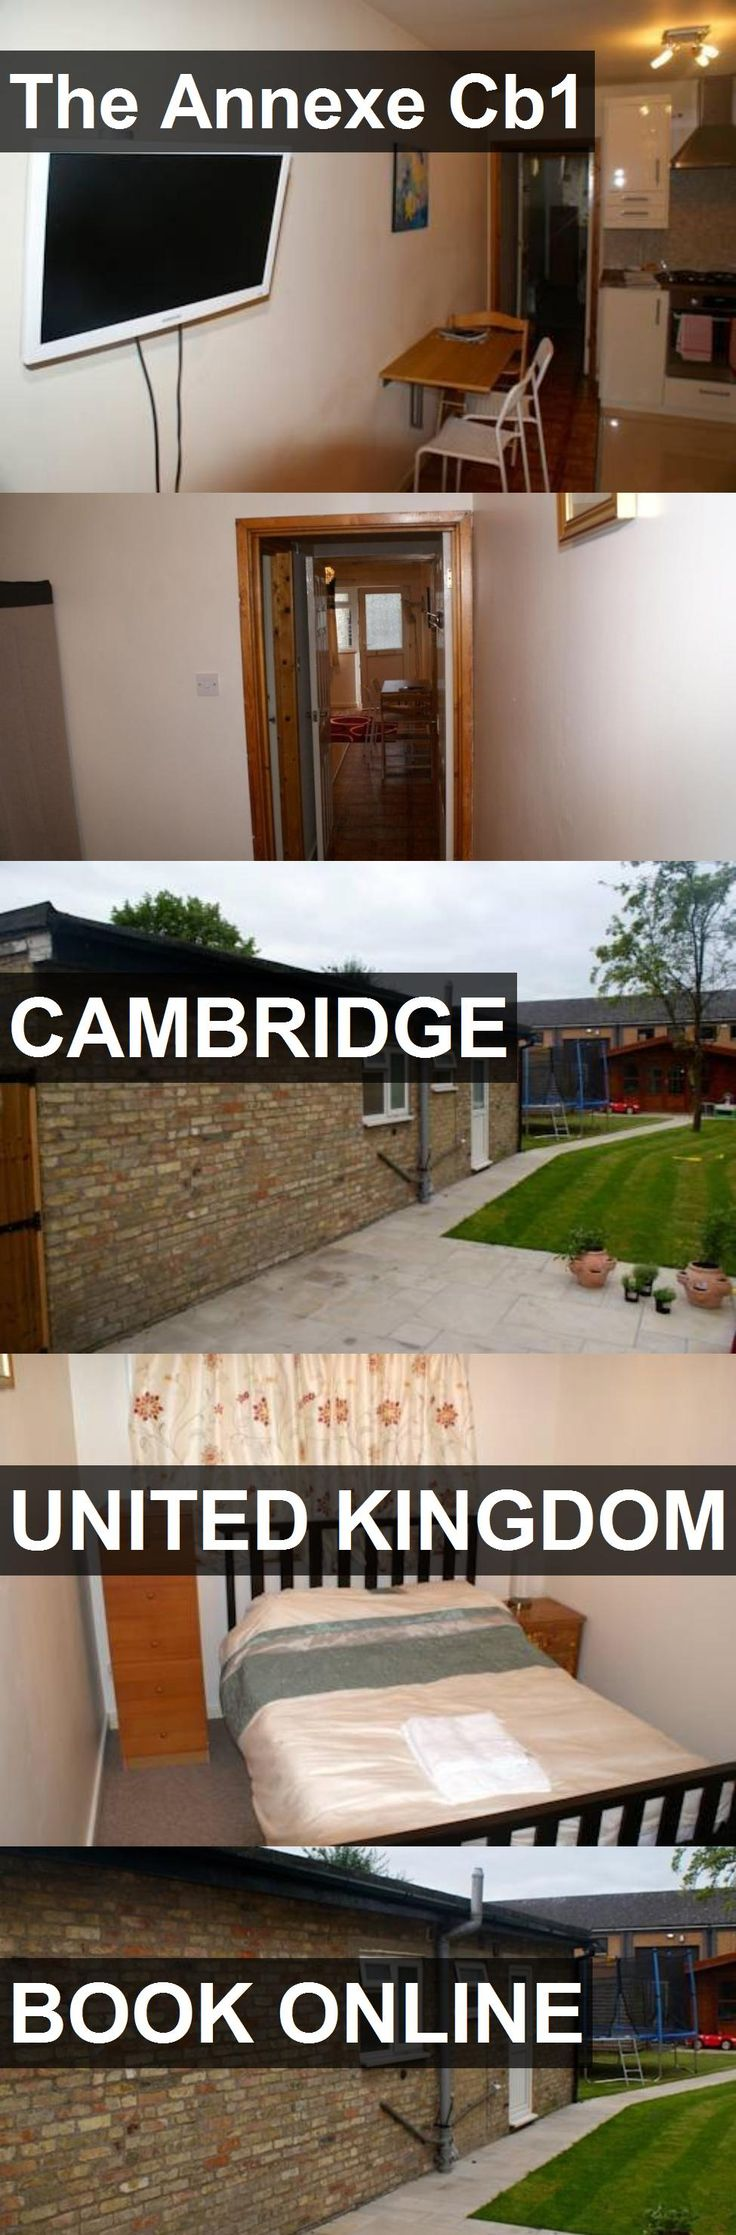 Hotel The Annexe Cb1 in Cambridge, United Kingdom. For more information, photos, reviews and best prices please follow the link. #UnitedKingdom #Cambridge #travel #vacation #hotel